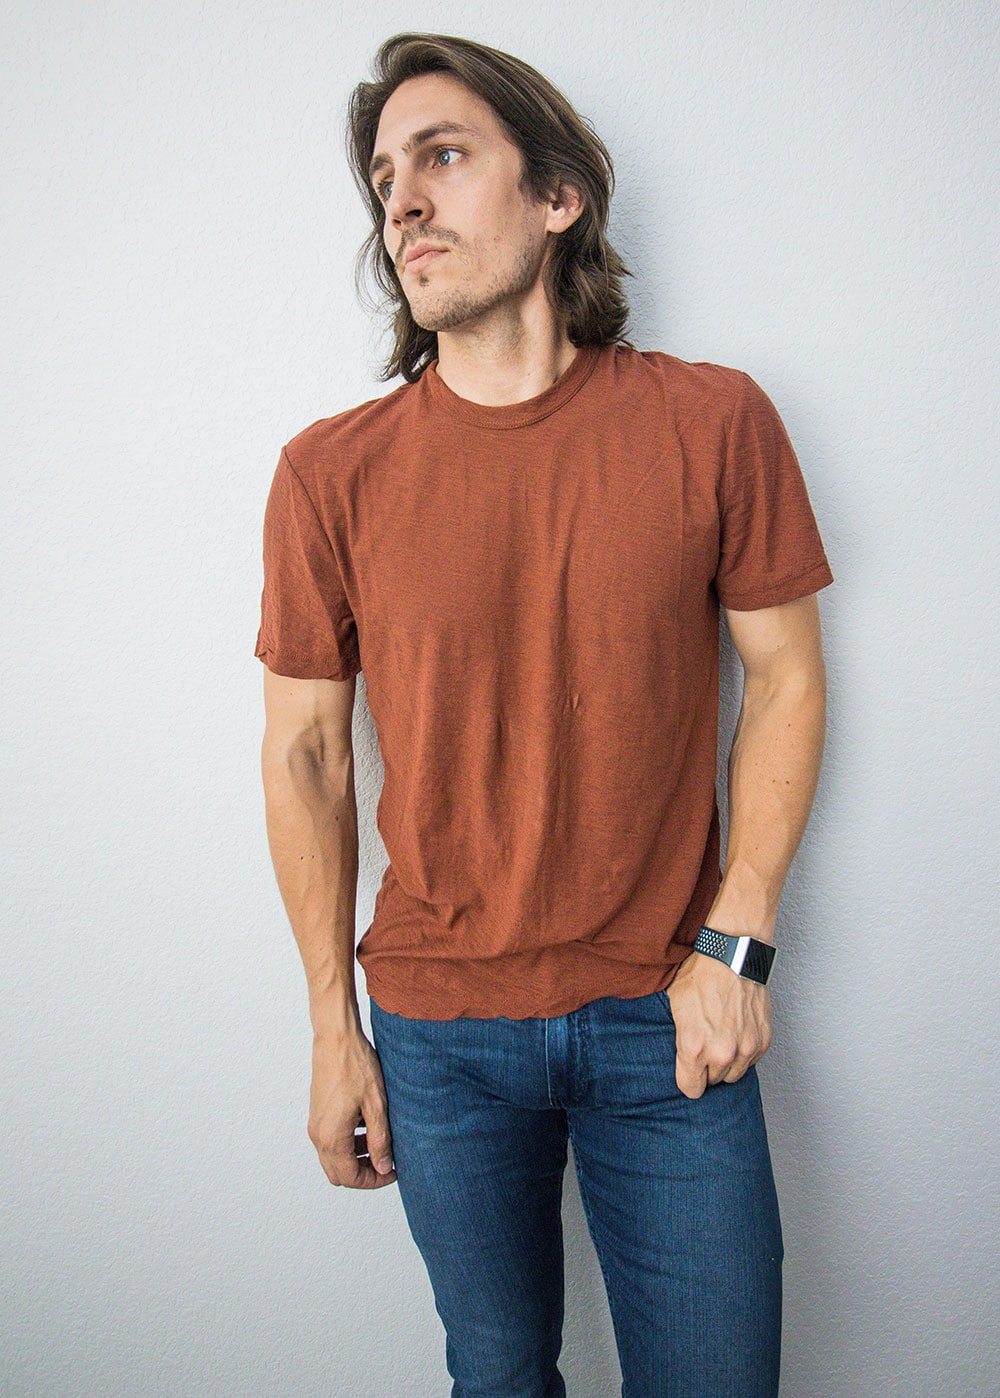 c26caf1e Nordstrom Anniversary Sale 2018 : Top 9 Men's Items - Life By Lee